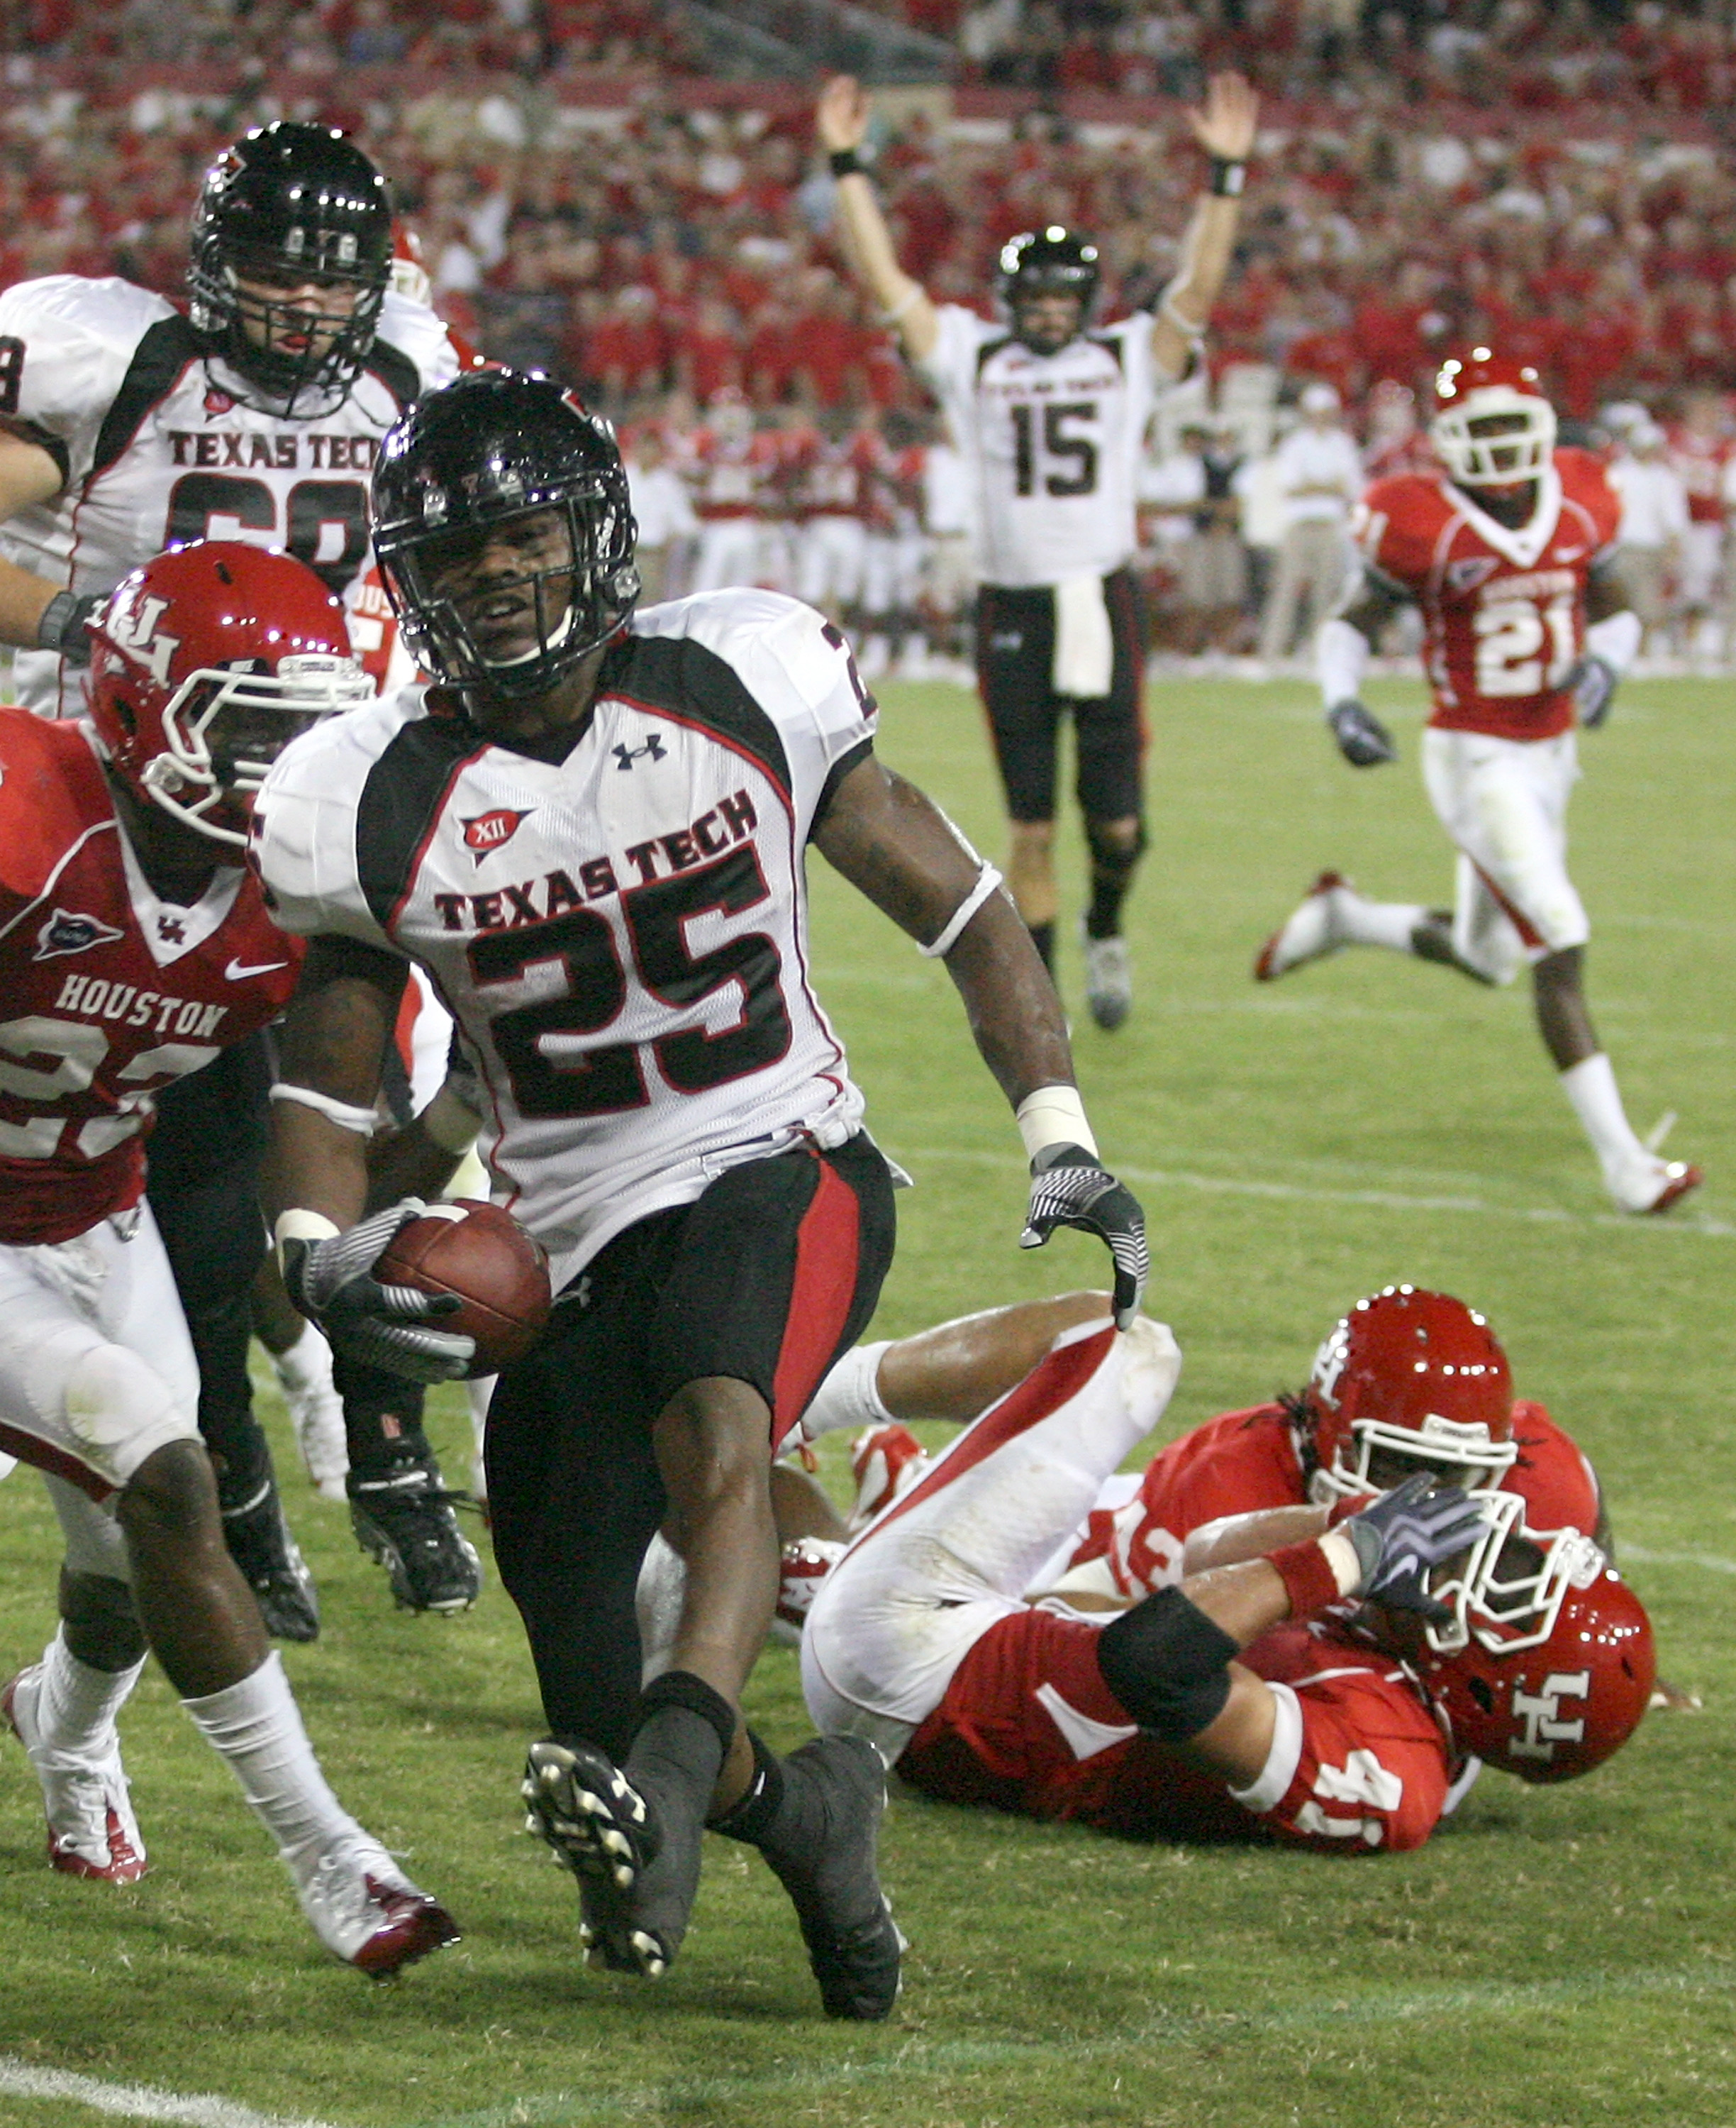 HOUSTON - SEPTEMBER 26:  Running back Baron Batch #25 of the Texas Tech Red Raiders rushes for a touchdown against the Houston Cougars at Robertson Stadium on September 26, 2009 in Houston, Texas.  (Photo by Thomas B. Shea/Getty Images)